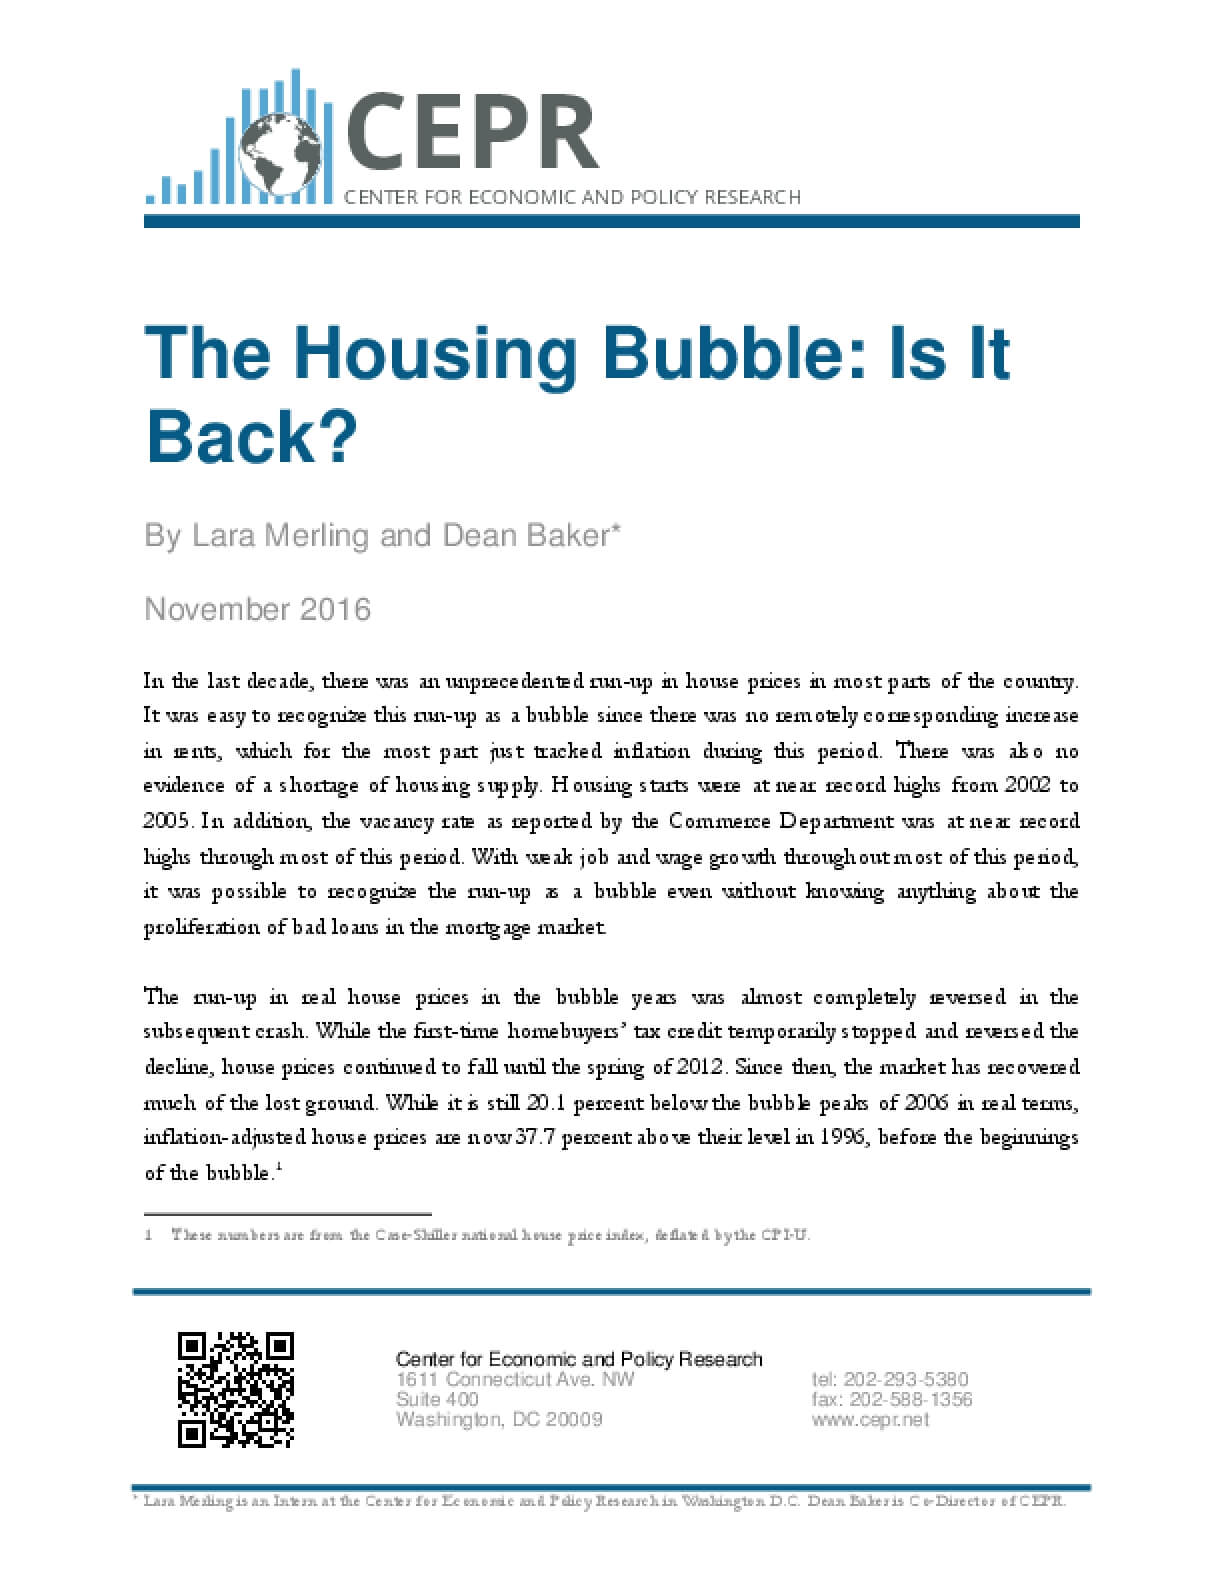 The Housing Bubble: Is It Back?